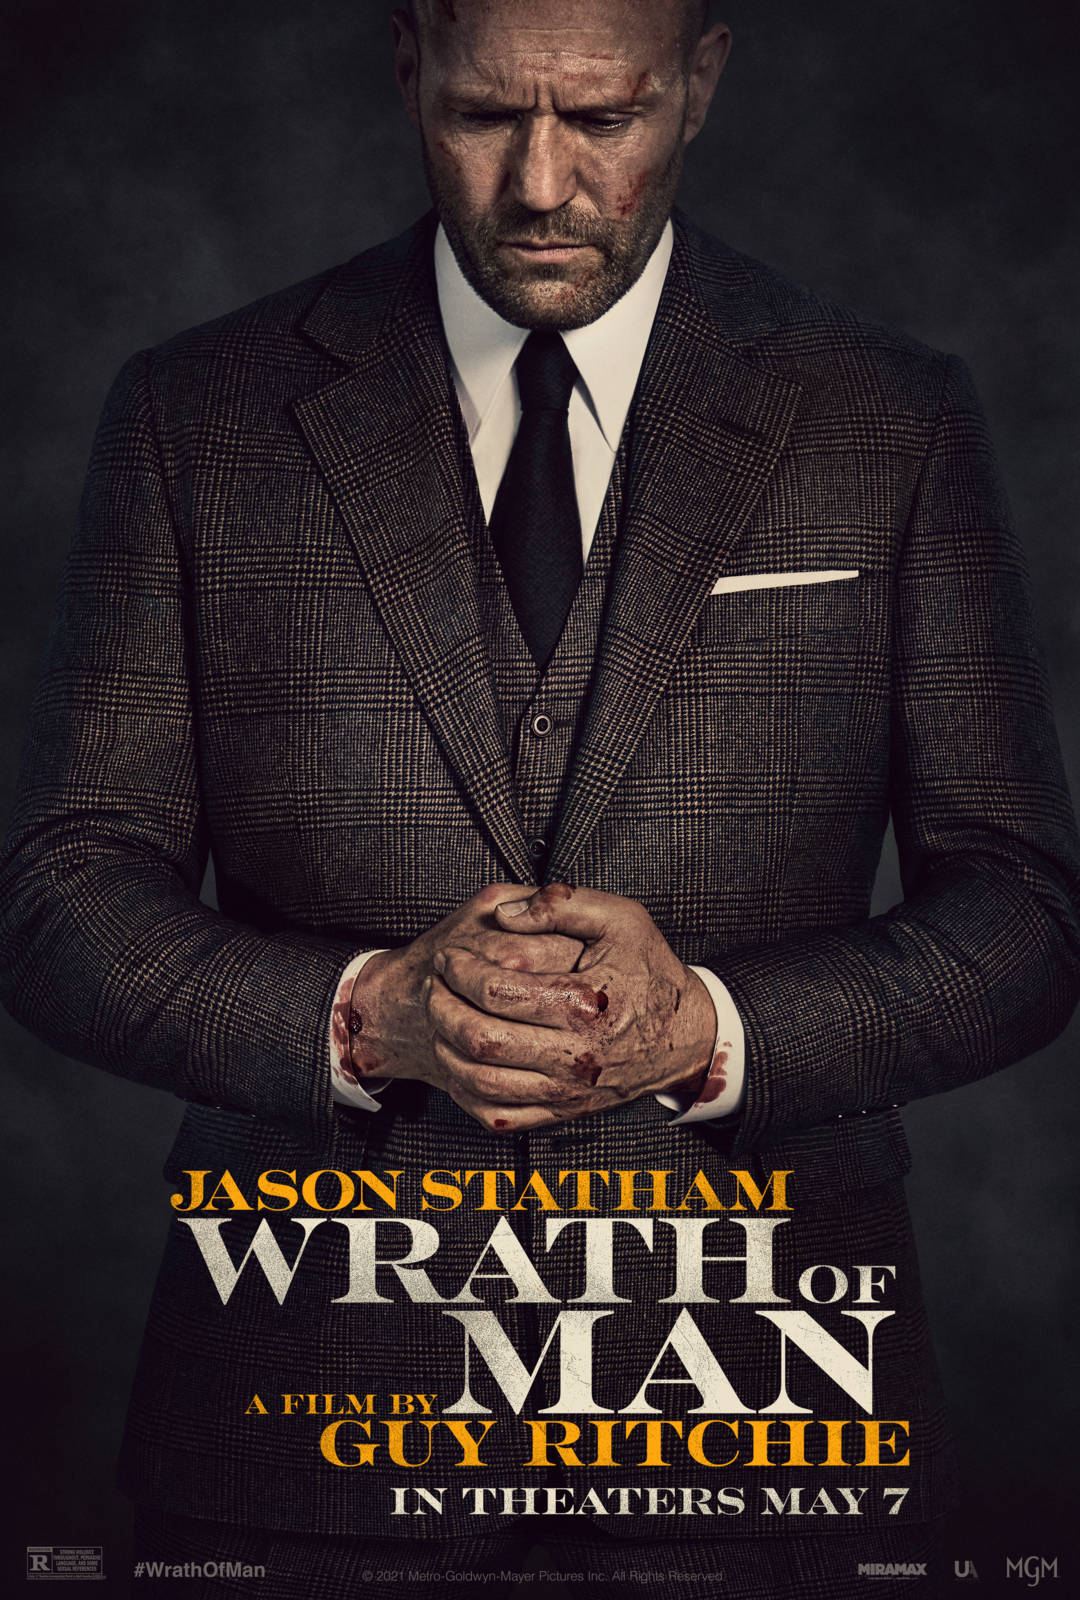 """[!WATCH!] Wrath of man (2021) Online FullMovie Free 123Movies 123Movies! — Wrath of Man (2021) on NEWCINEMAX® 